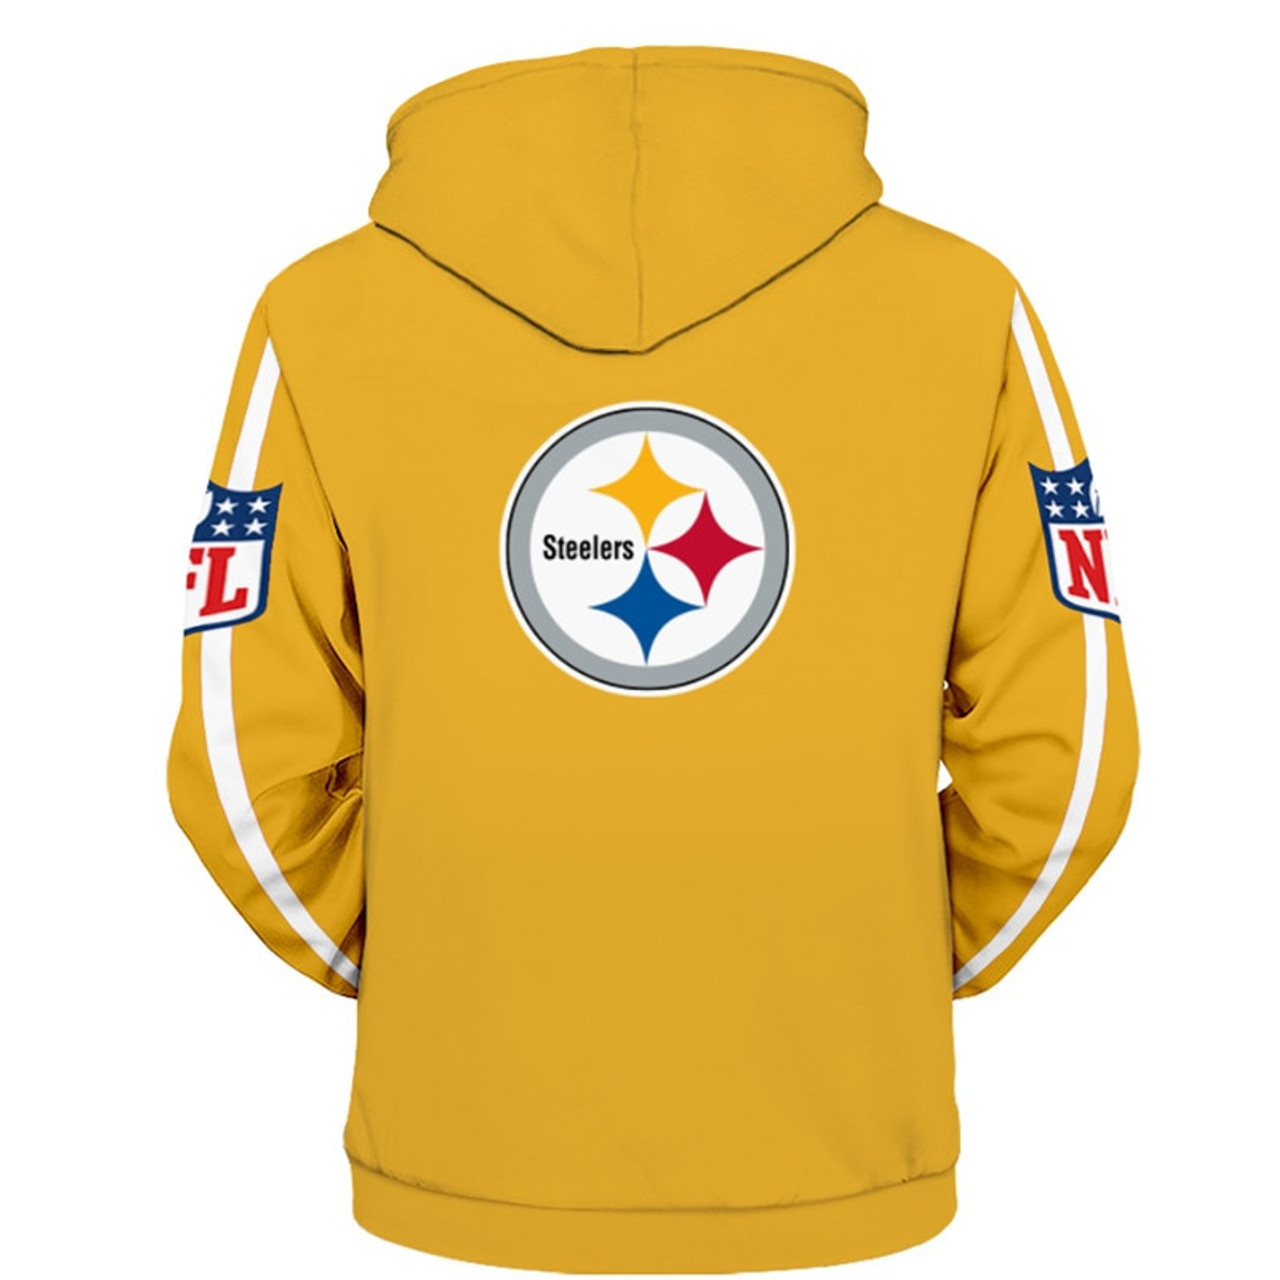 best service 3bc21 d5b69 **(OFFICIALLY-LICENSED-N.F.L.PITTSBURGH-STEELERS-PULLOVER-HOODIES/ALL-OVER-GRAPHIC-3D-PRINTED-IN-STEELERS-TEAM-COLORS/NICE-DETAILED-PREMIUM-DOUBLE-SID...